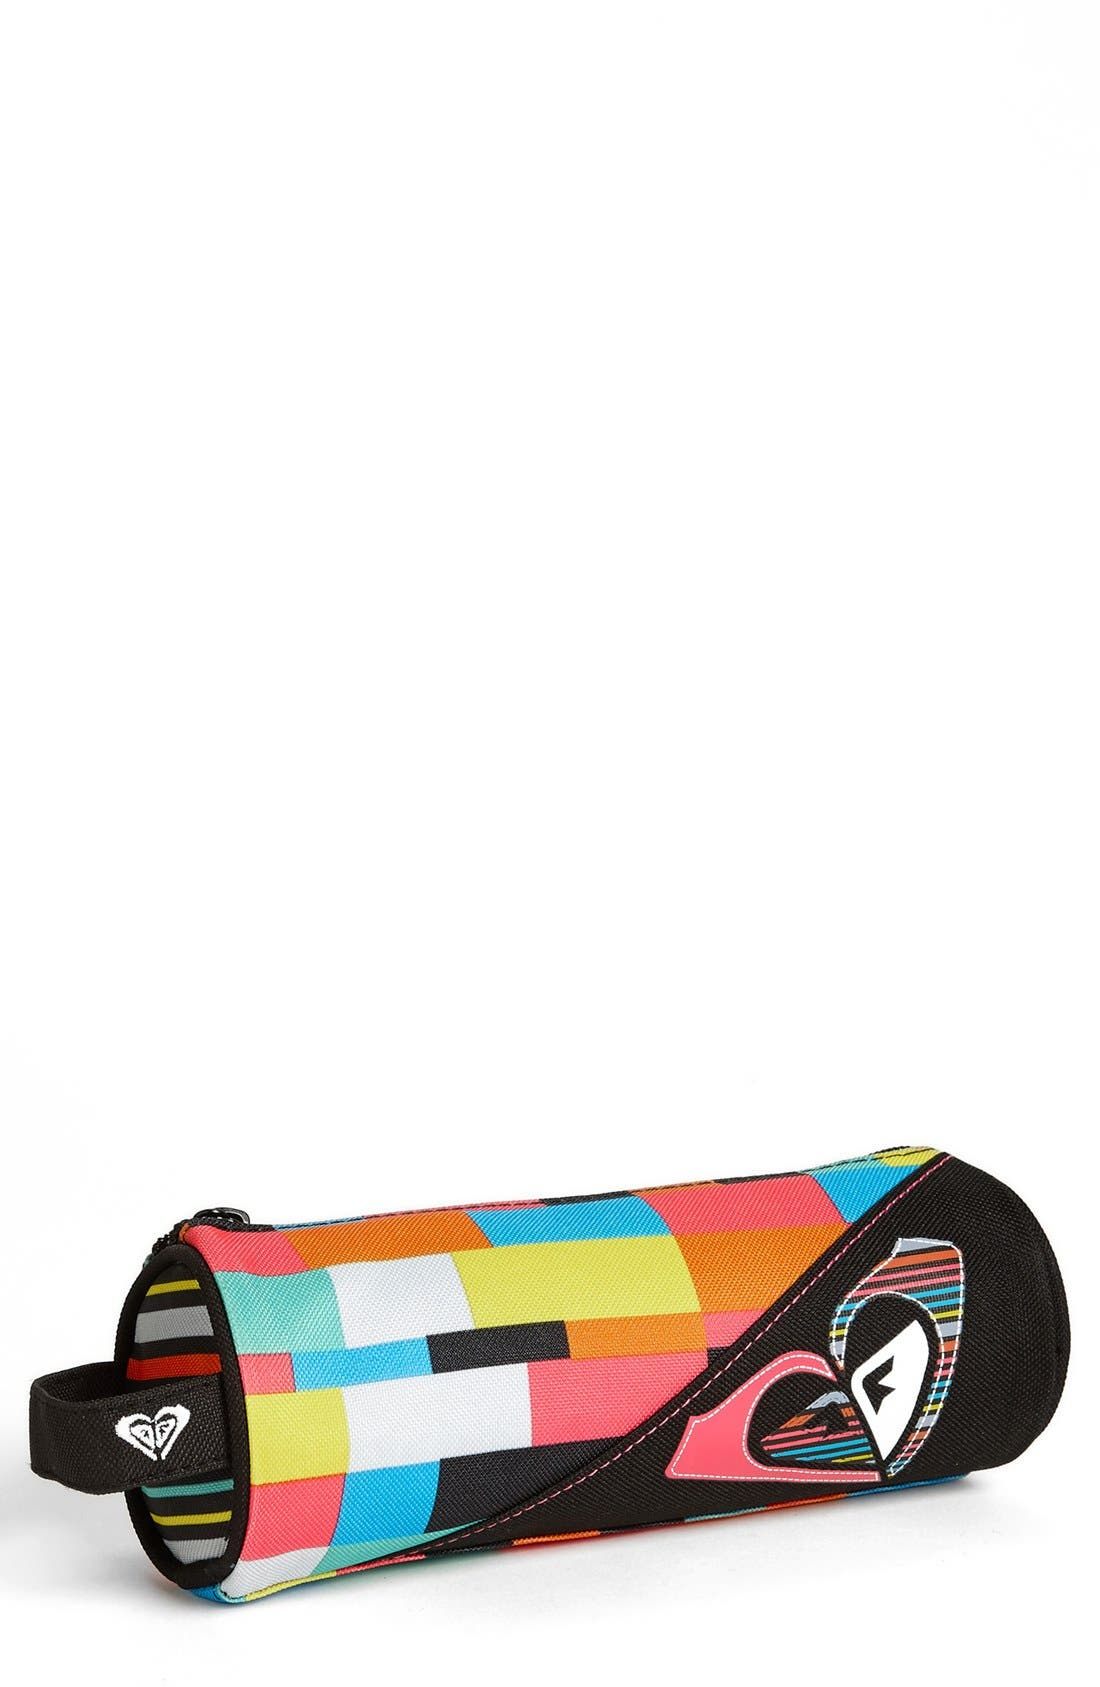 'Scribble' Pencil Case,                             Main thumbnail 1, color,                             Multi/ Black/ Pink/ Blue